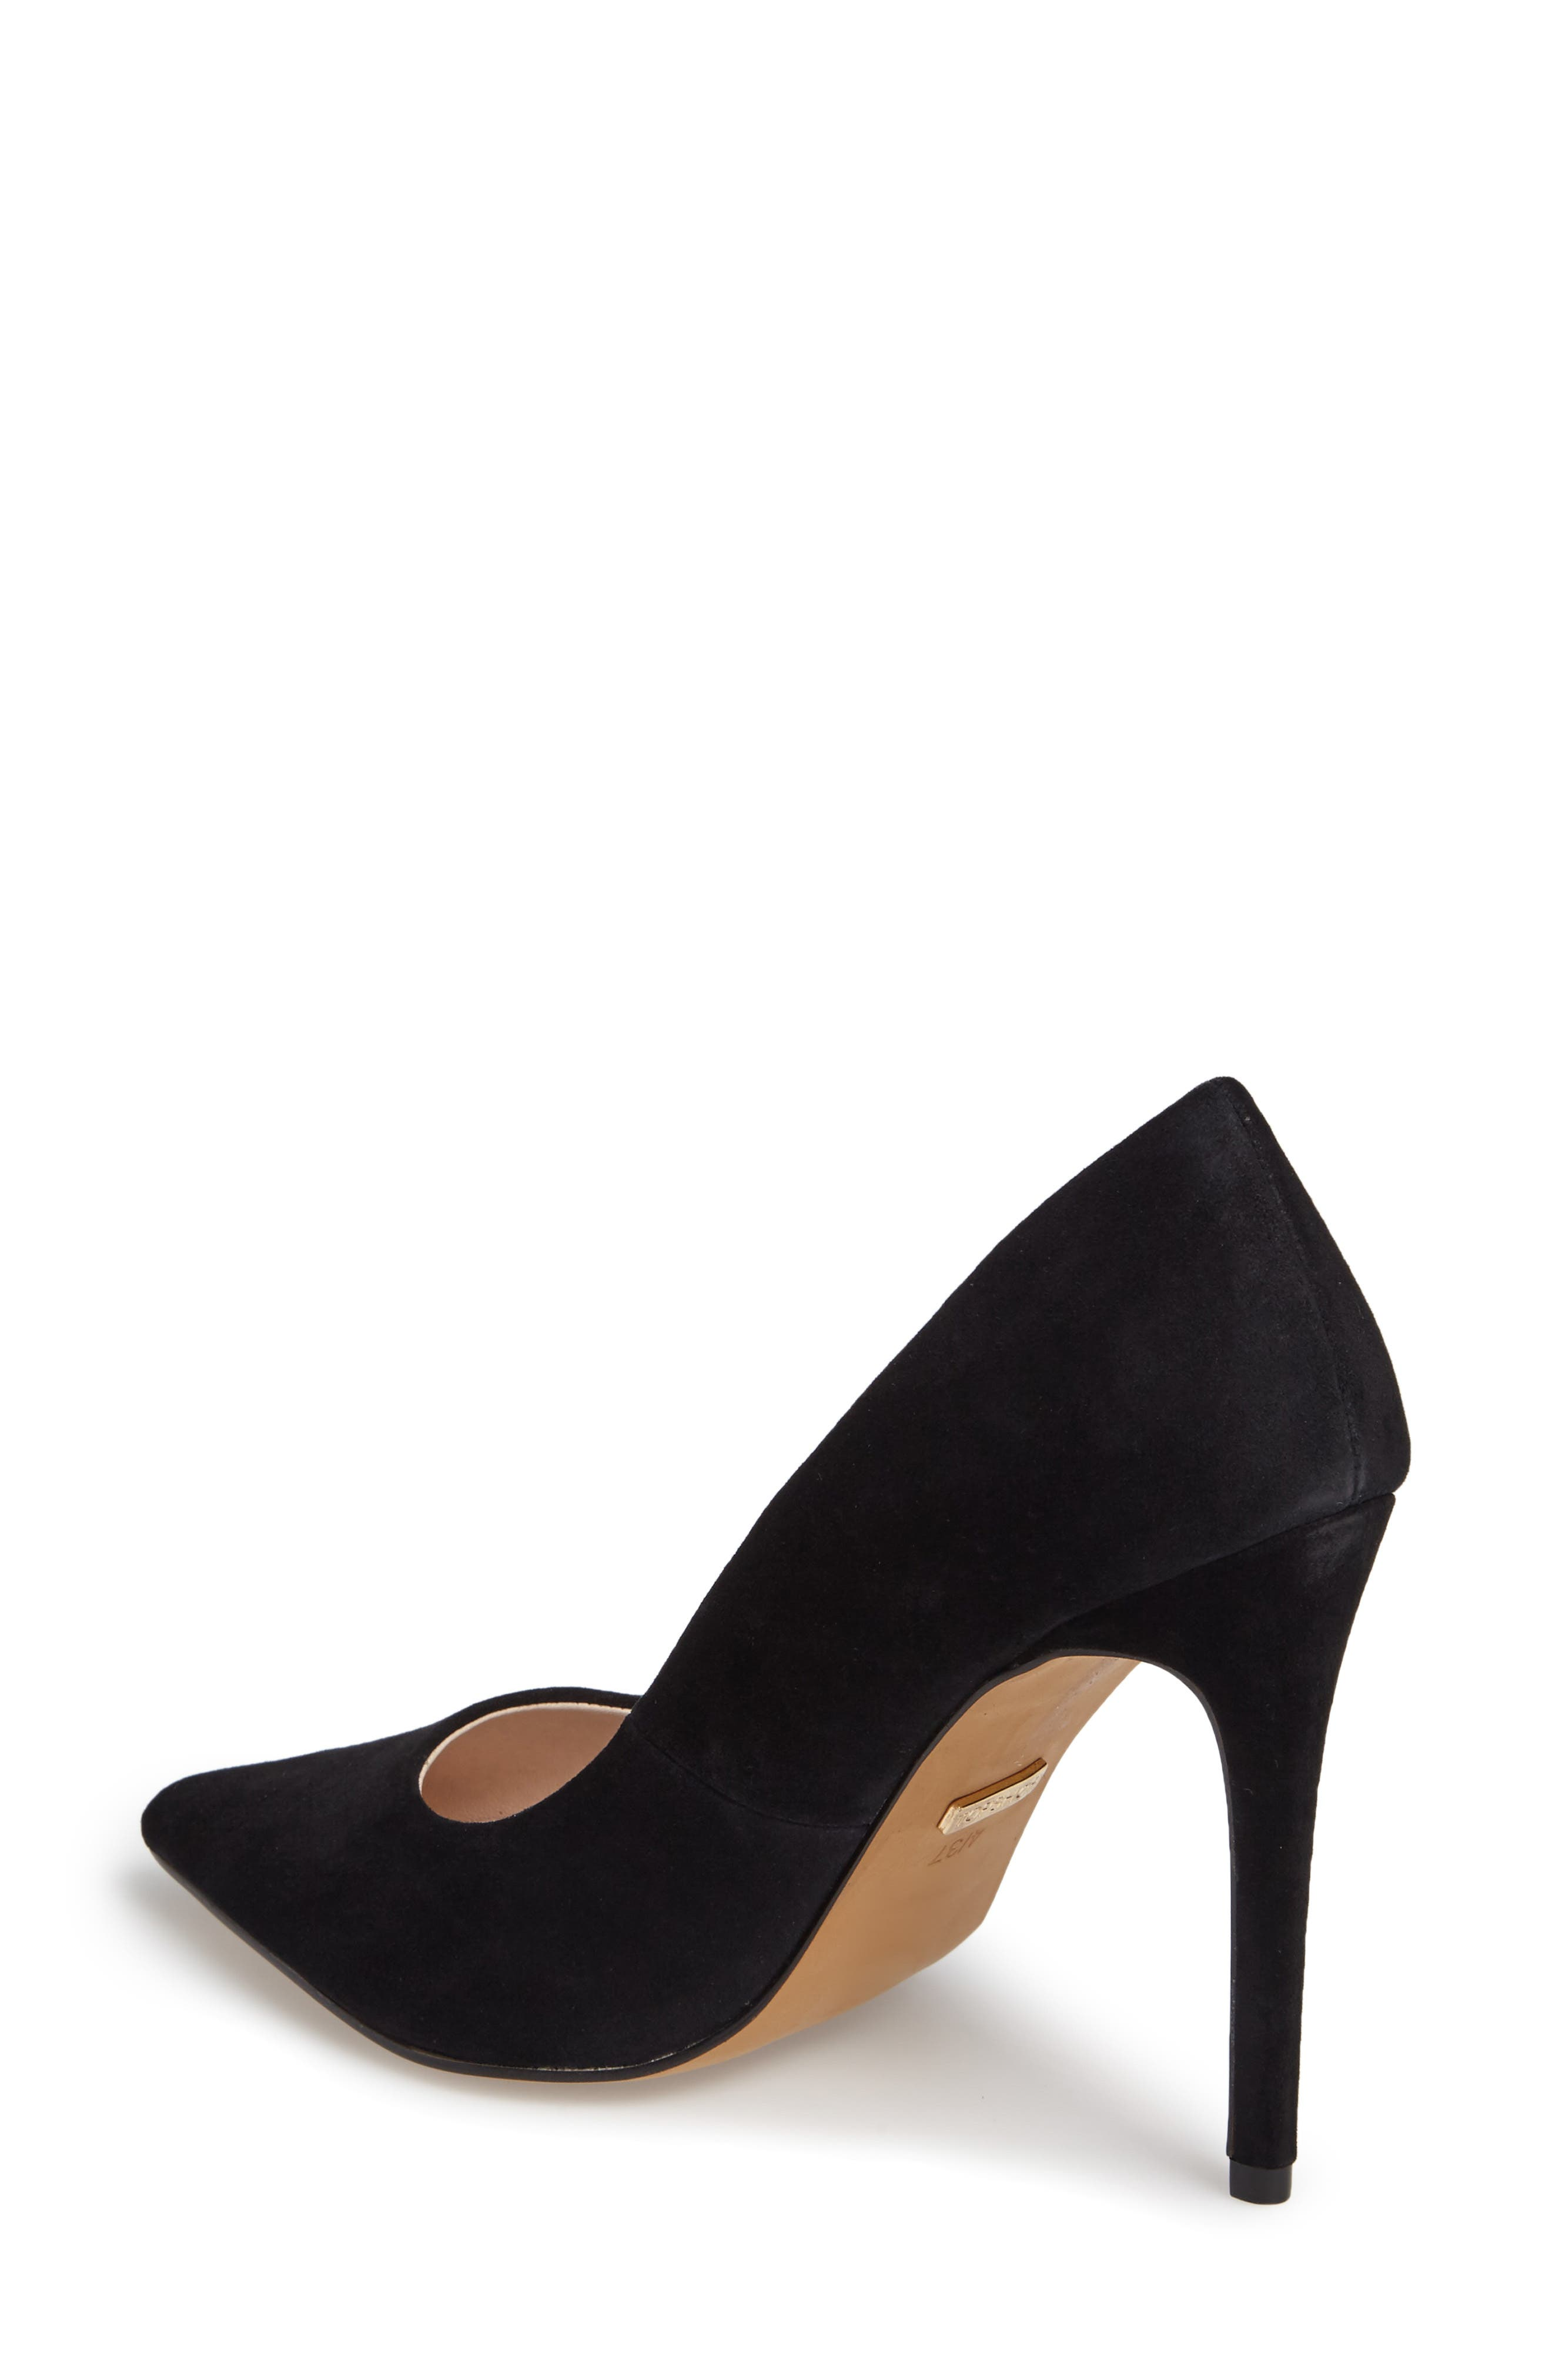 TOPSHOP,                             Grammer Pointy Toe Pump,                             Alternate thumbnail 2, color,                             001